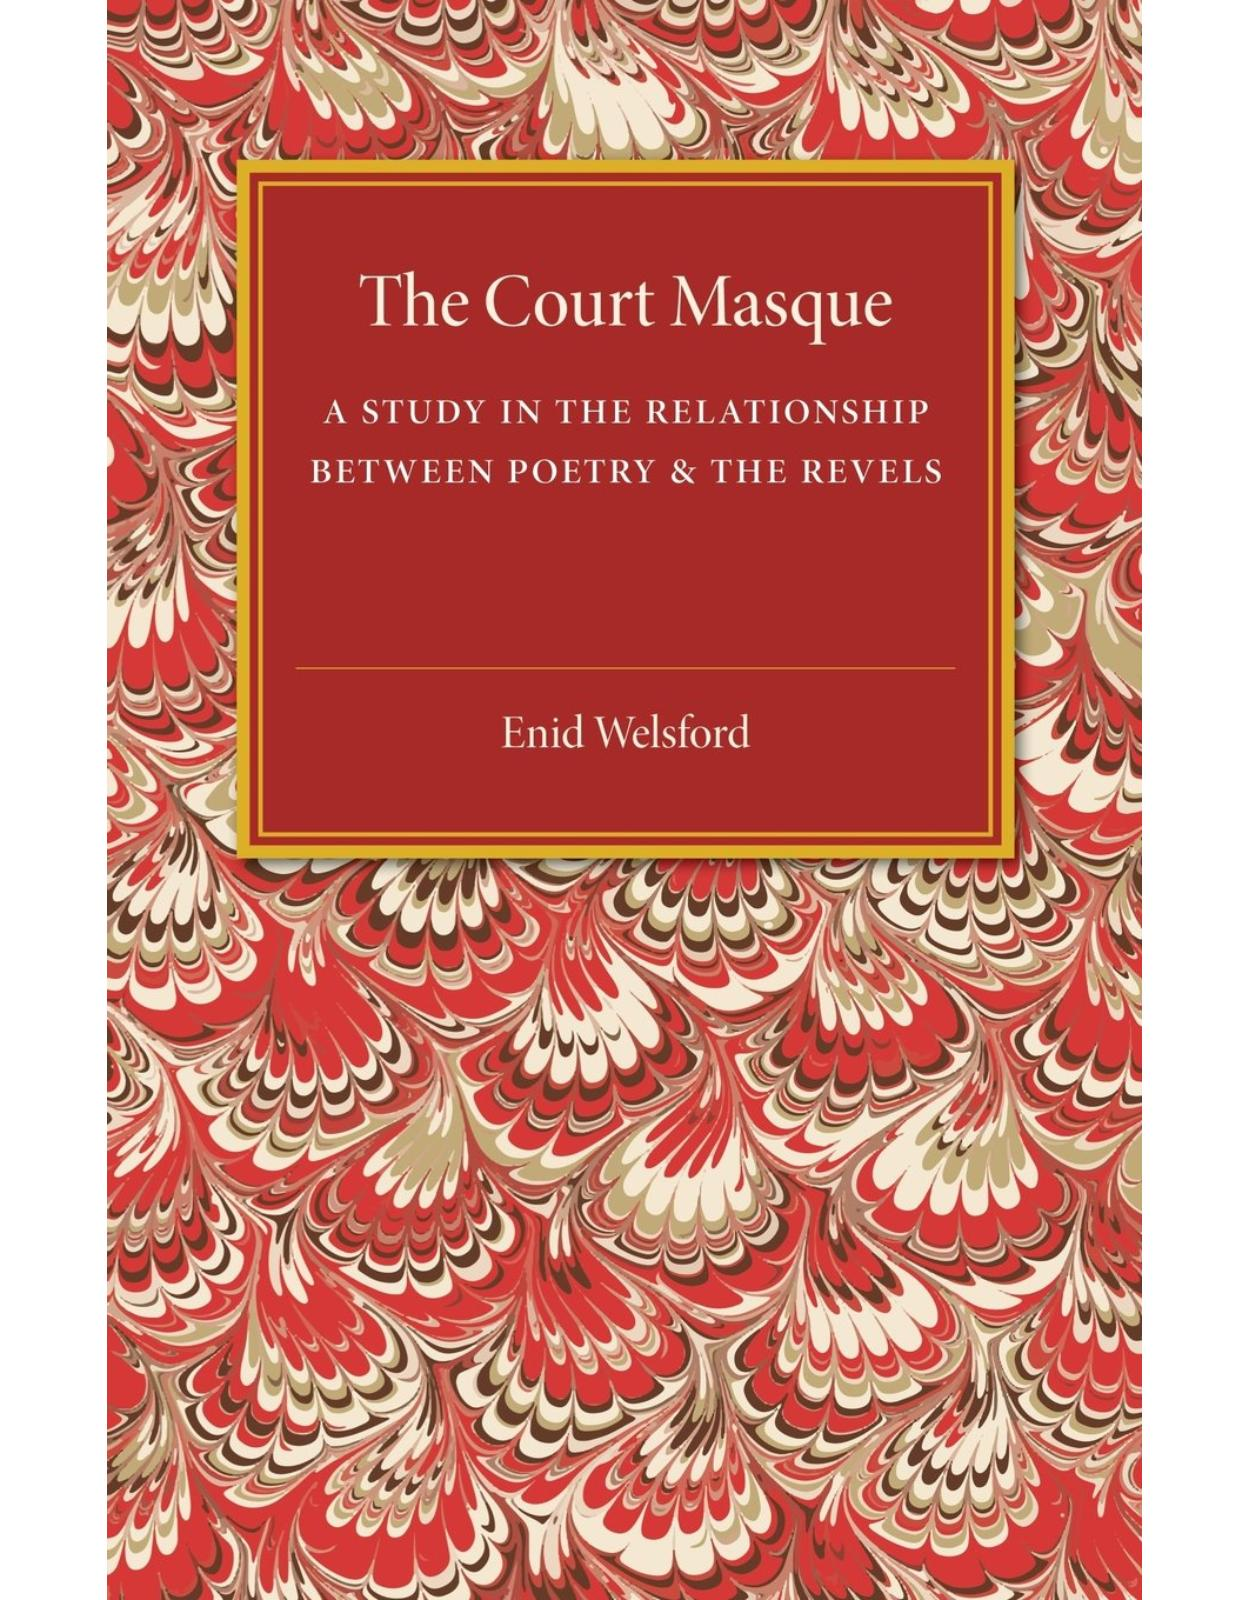 The Court Masque: A Study in the Relationship between Poetry and the Revels